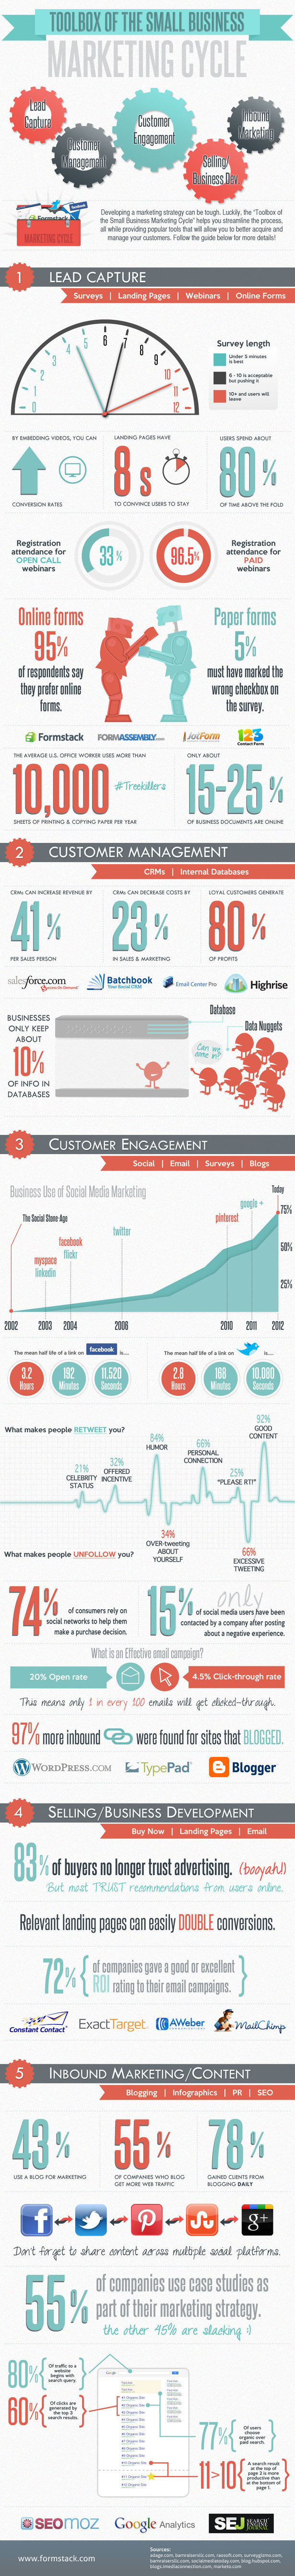 Small Business Marketing Tactics-Infographic